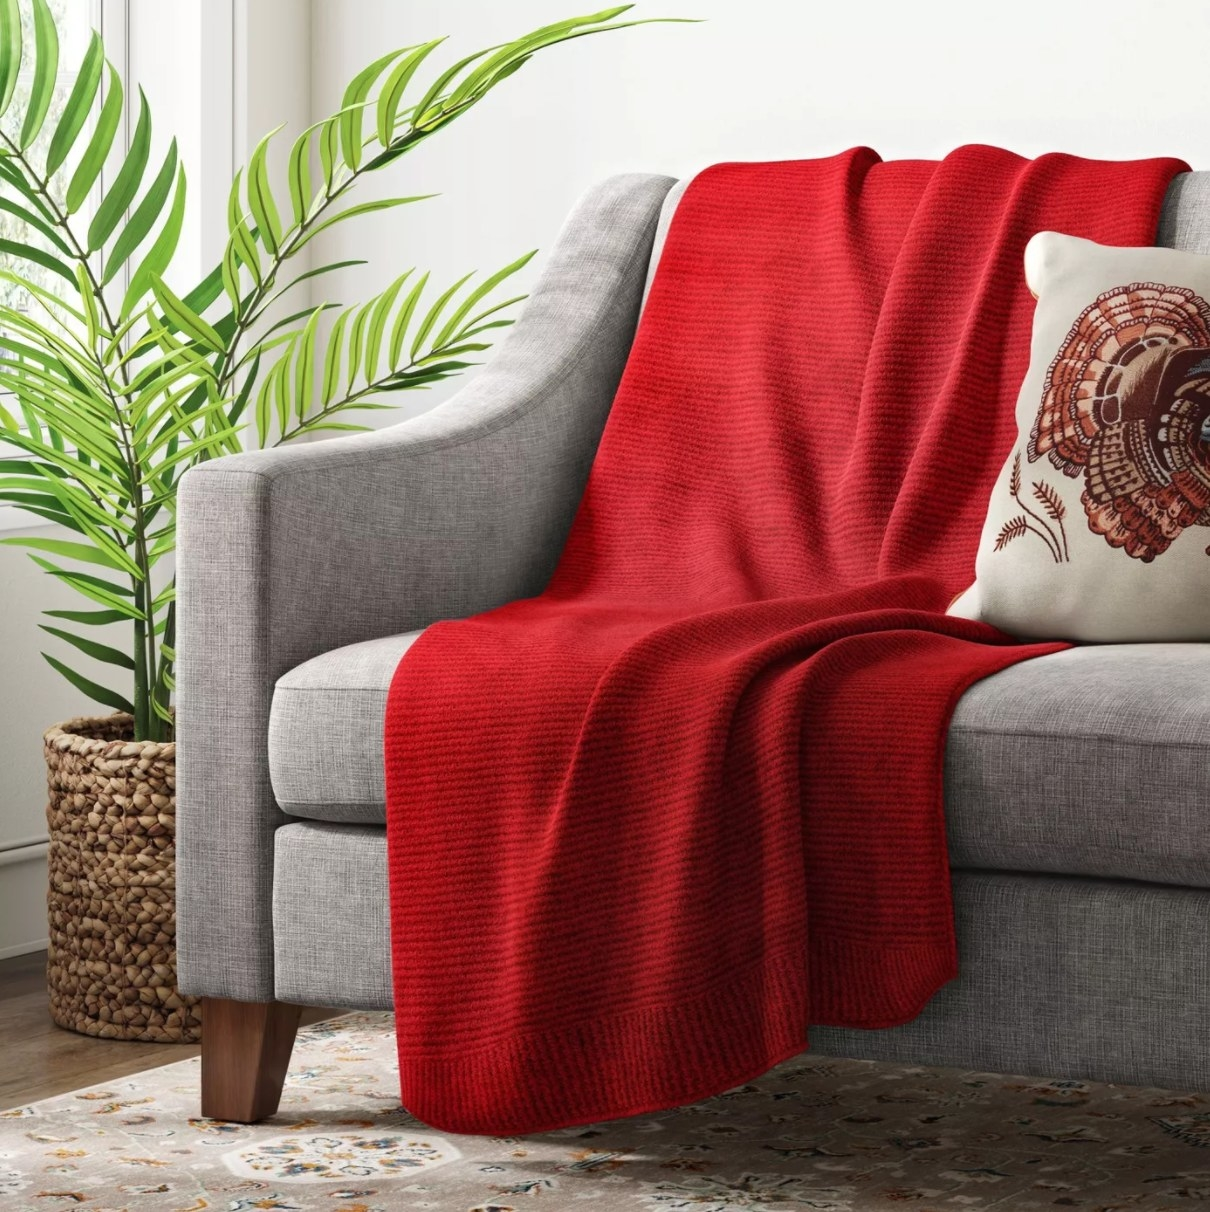 The knit throw blanket in red